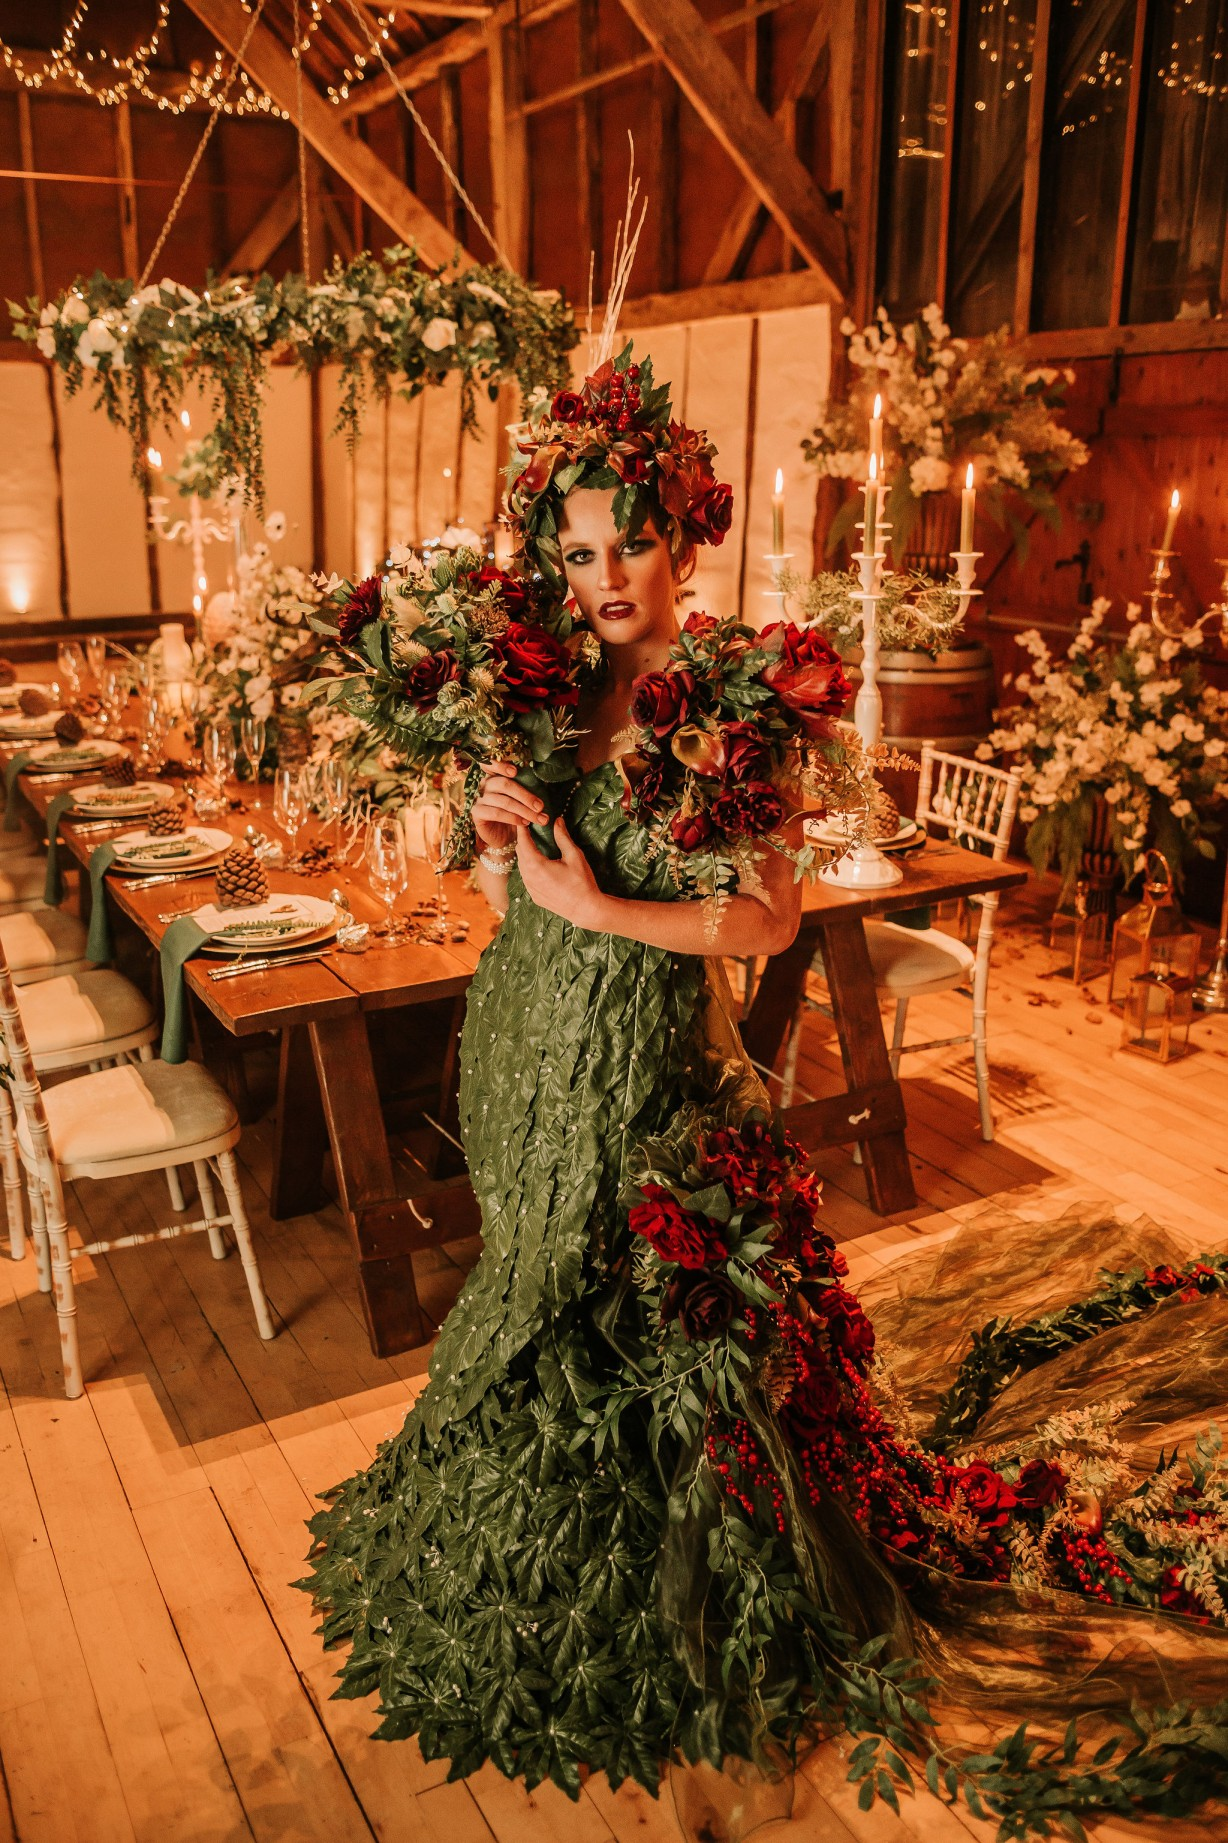 enchanting winter wedding - unique bridal style - artistic bridal dress - unconventional wedding